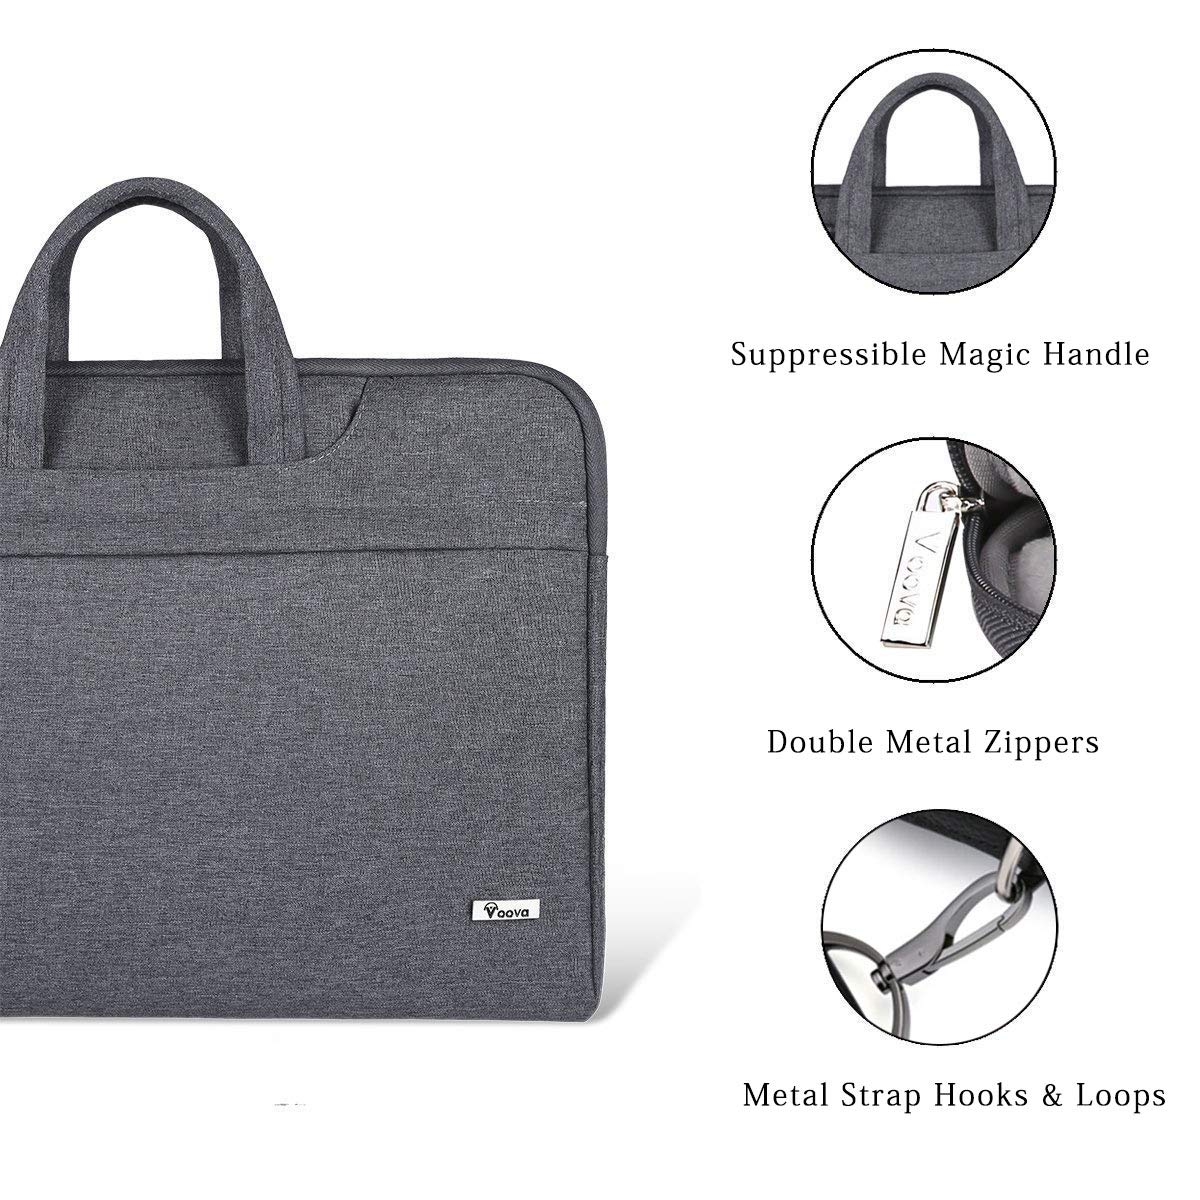 Voova Laptop Bag 17 17.3 inch Water-Resistant Laptop Sleeve Case with Shoulder Straps & Handle/Notebook Computer Case Briefcase Compatible with MacBook/Acer/Asus/Hp, Grey by  Voova (Image #5)